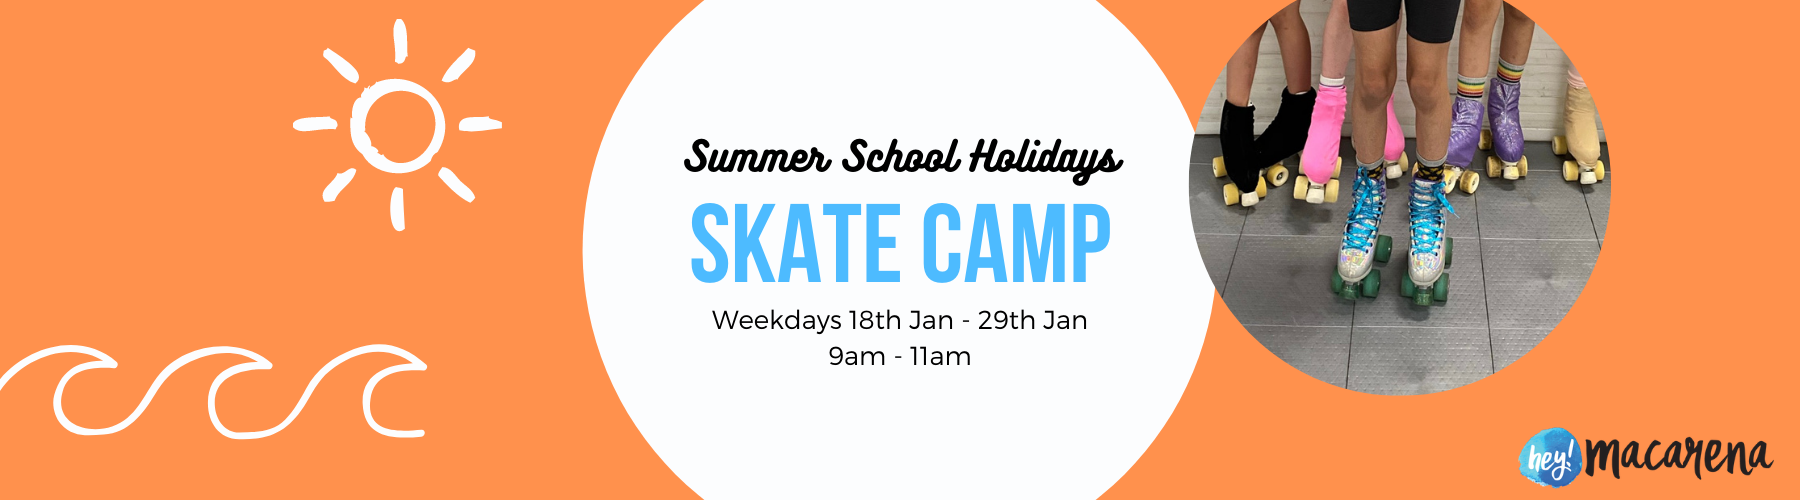 school holiday roller skate camp for kids